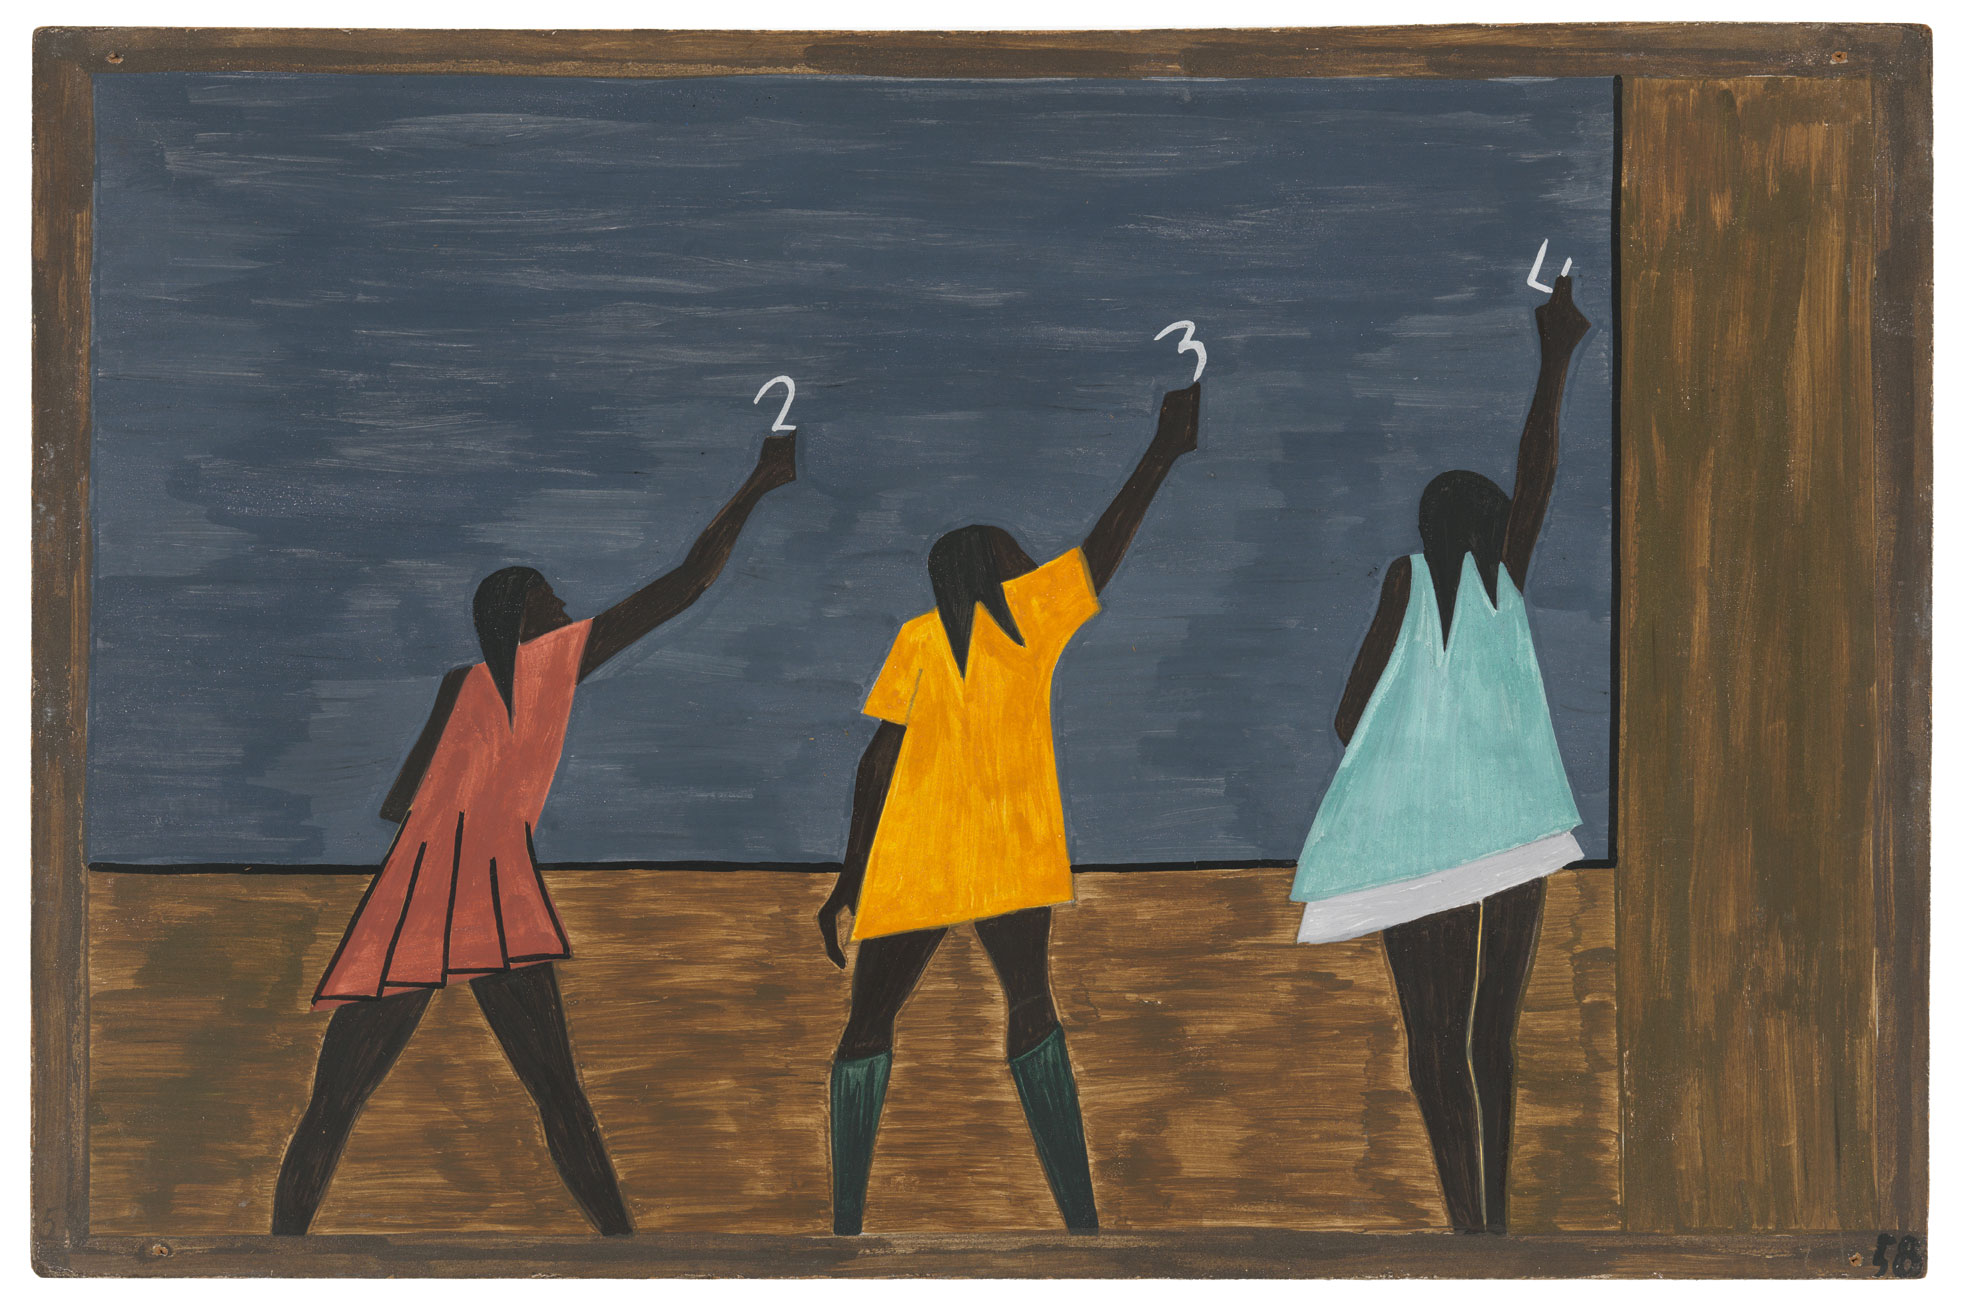 """Jacob Lawrence. The Migration Series. 1940-41. Panel 58: """"In the North the Negro had better educational facilities."""" Casein tempera on hardboard, 18 x 12″ (45.7 x 30.5 cm). The Museum of Modern Art, New York. Gift of Mrs. David M. Levy. © 2015 The Jacob and Gwendolyn Knight Lawrence Foundation, Seattle / Artists Rights Society (ARS), New York. Digital image © The Museum of Modern Art/Licensed by SCALA / Art Resource, NY"""